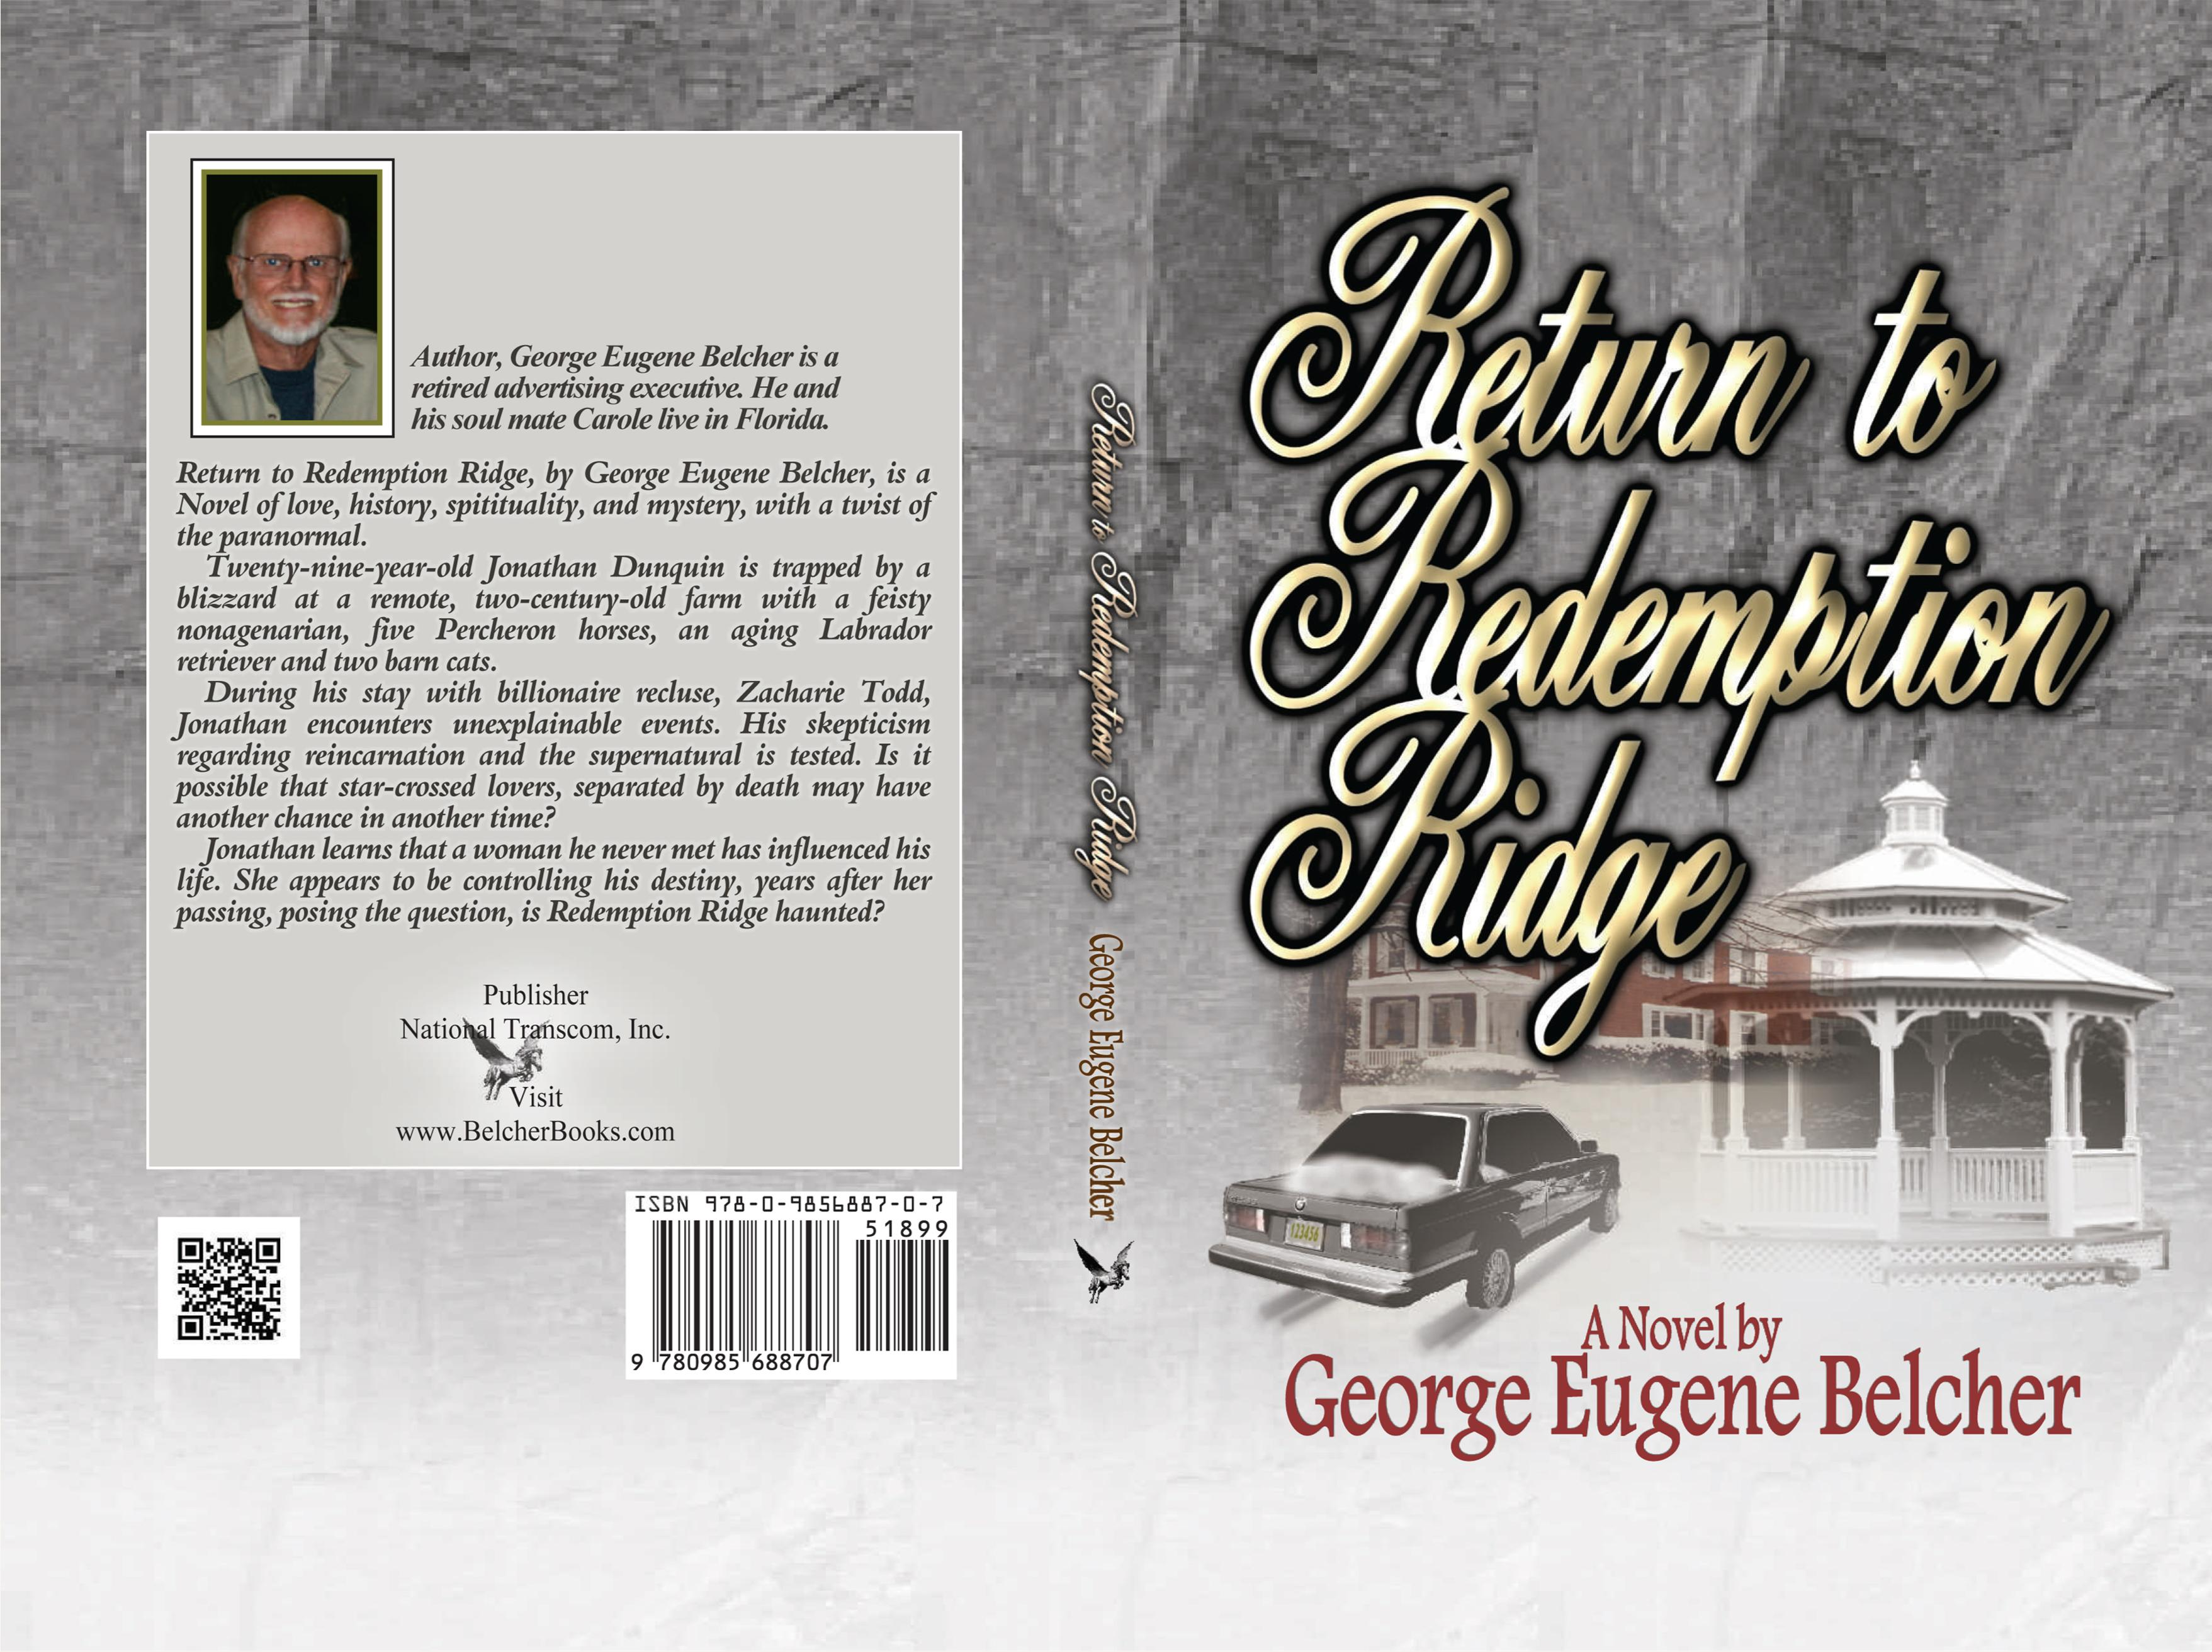 Return to Redemption Ridge cover image